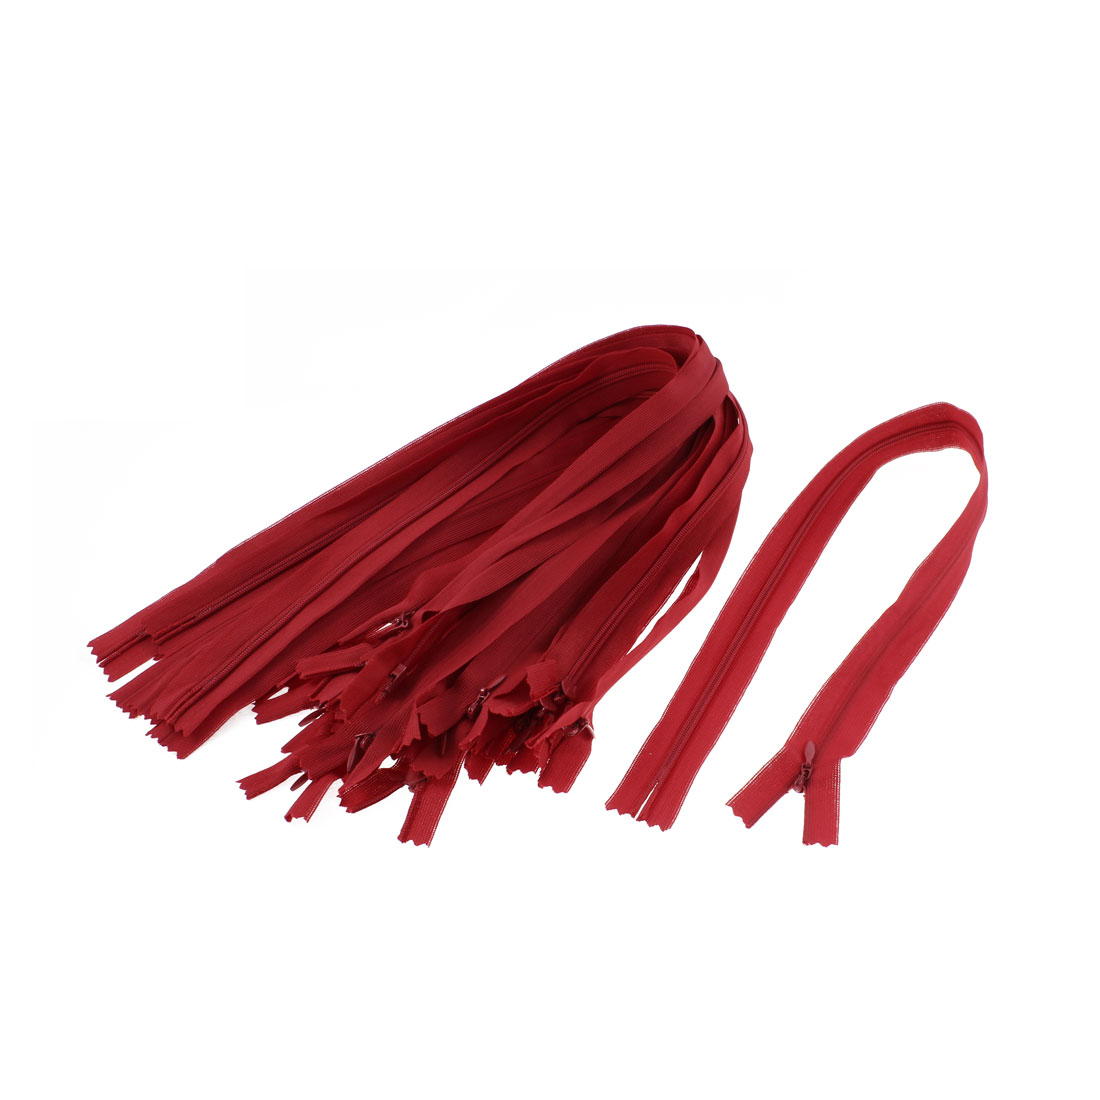 Unique Bargains Dress Pants Closed End Nylon Zippers Tailor Sewing Craft Tool Red 50cm 20 Pcs